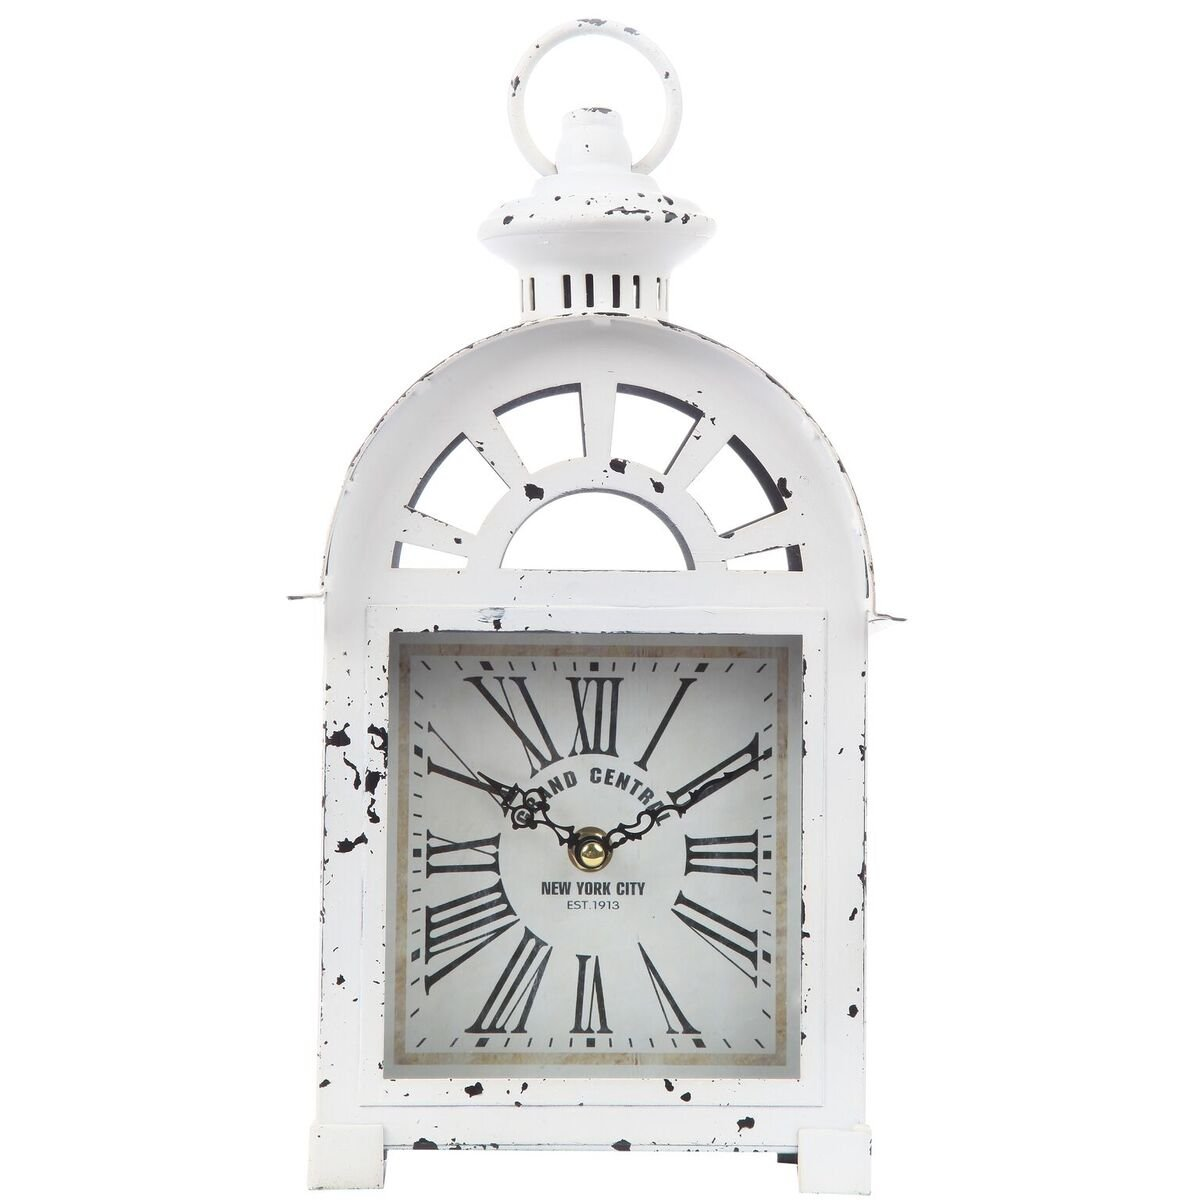 Lily's Home Vintage Inspired Lantern Grand Central New York City Train Station-Style Mantle Clock, Battery Powered with Quartz Movement, Fits with Victorian or Antique Décor Theme (13 3/4'' Tall)